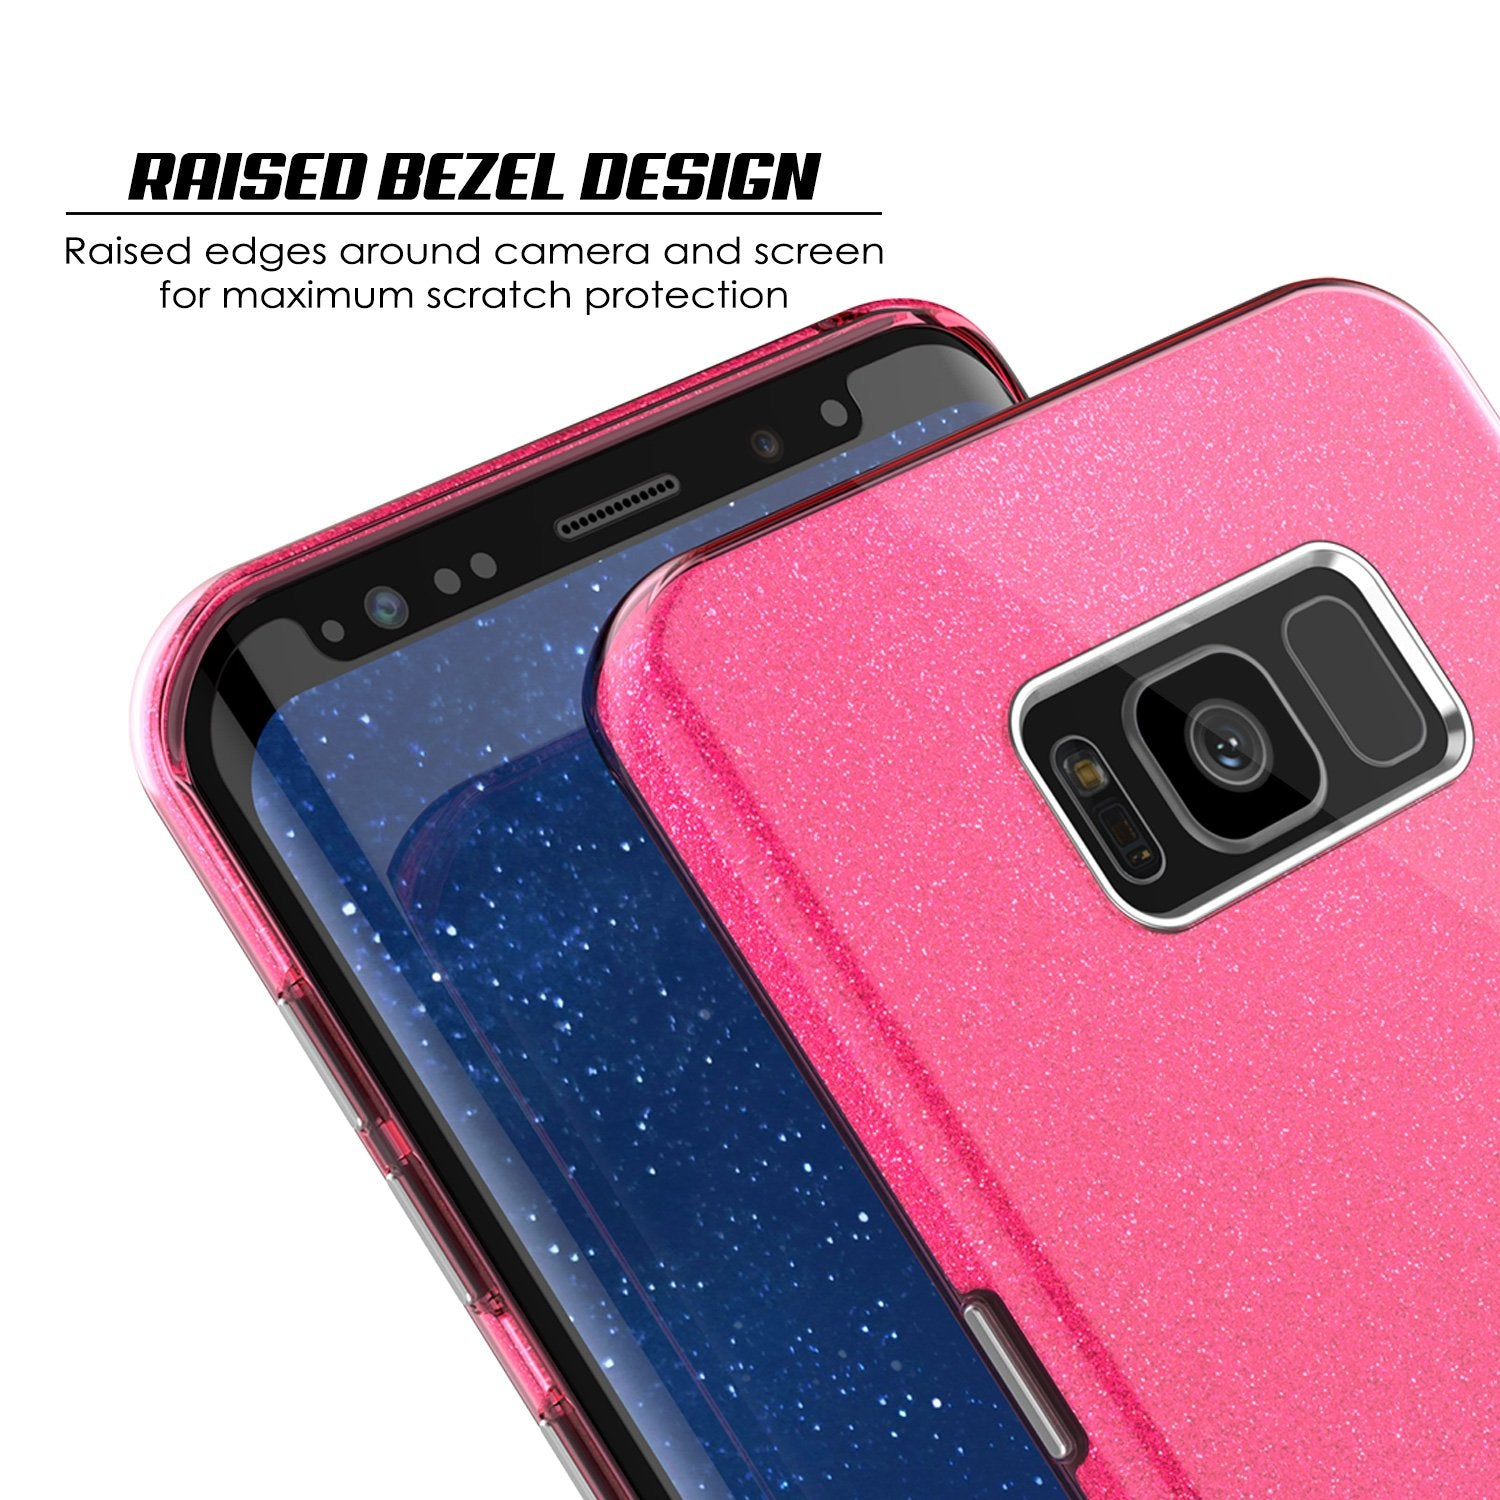 Galaxy S8 Case, Punkcase Galactic 2.0 Series Ultra Slim Protective Armor TPU Cover w/ PunkShield Screen Protector | Lifetime Exchange Warranty | Designed for Samsung Galaxy S8 [Pink] - PunkCase NZ